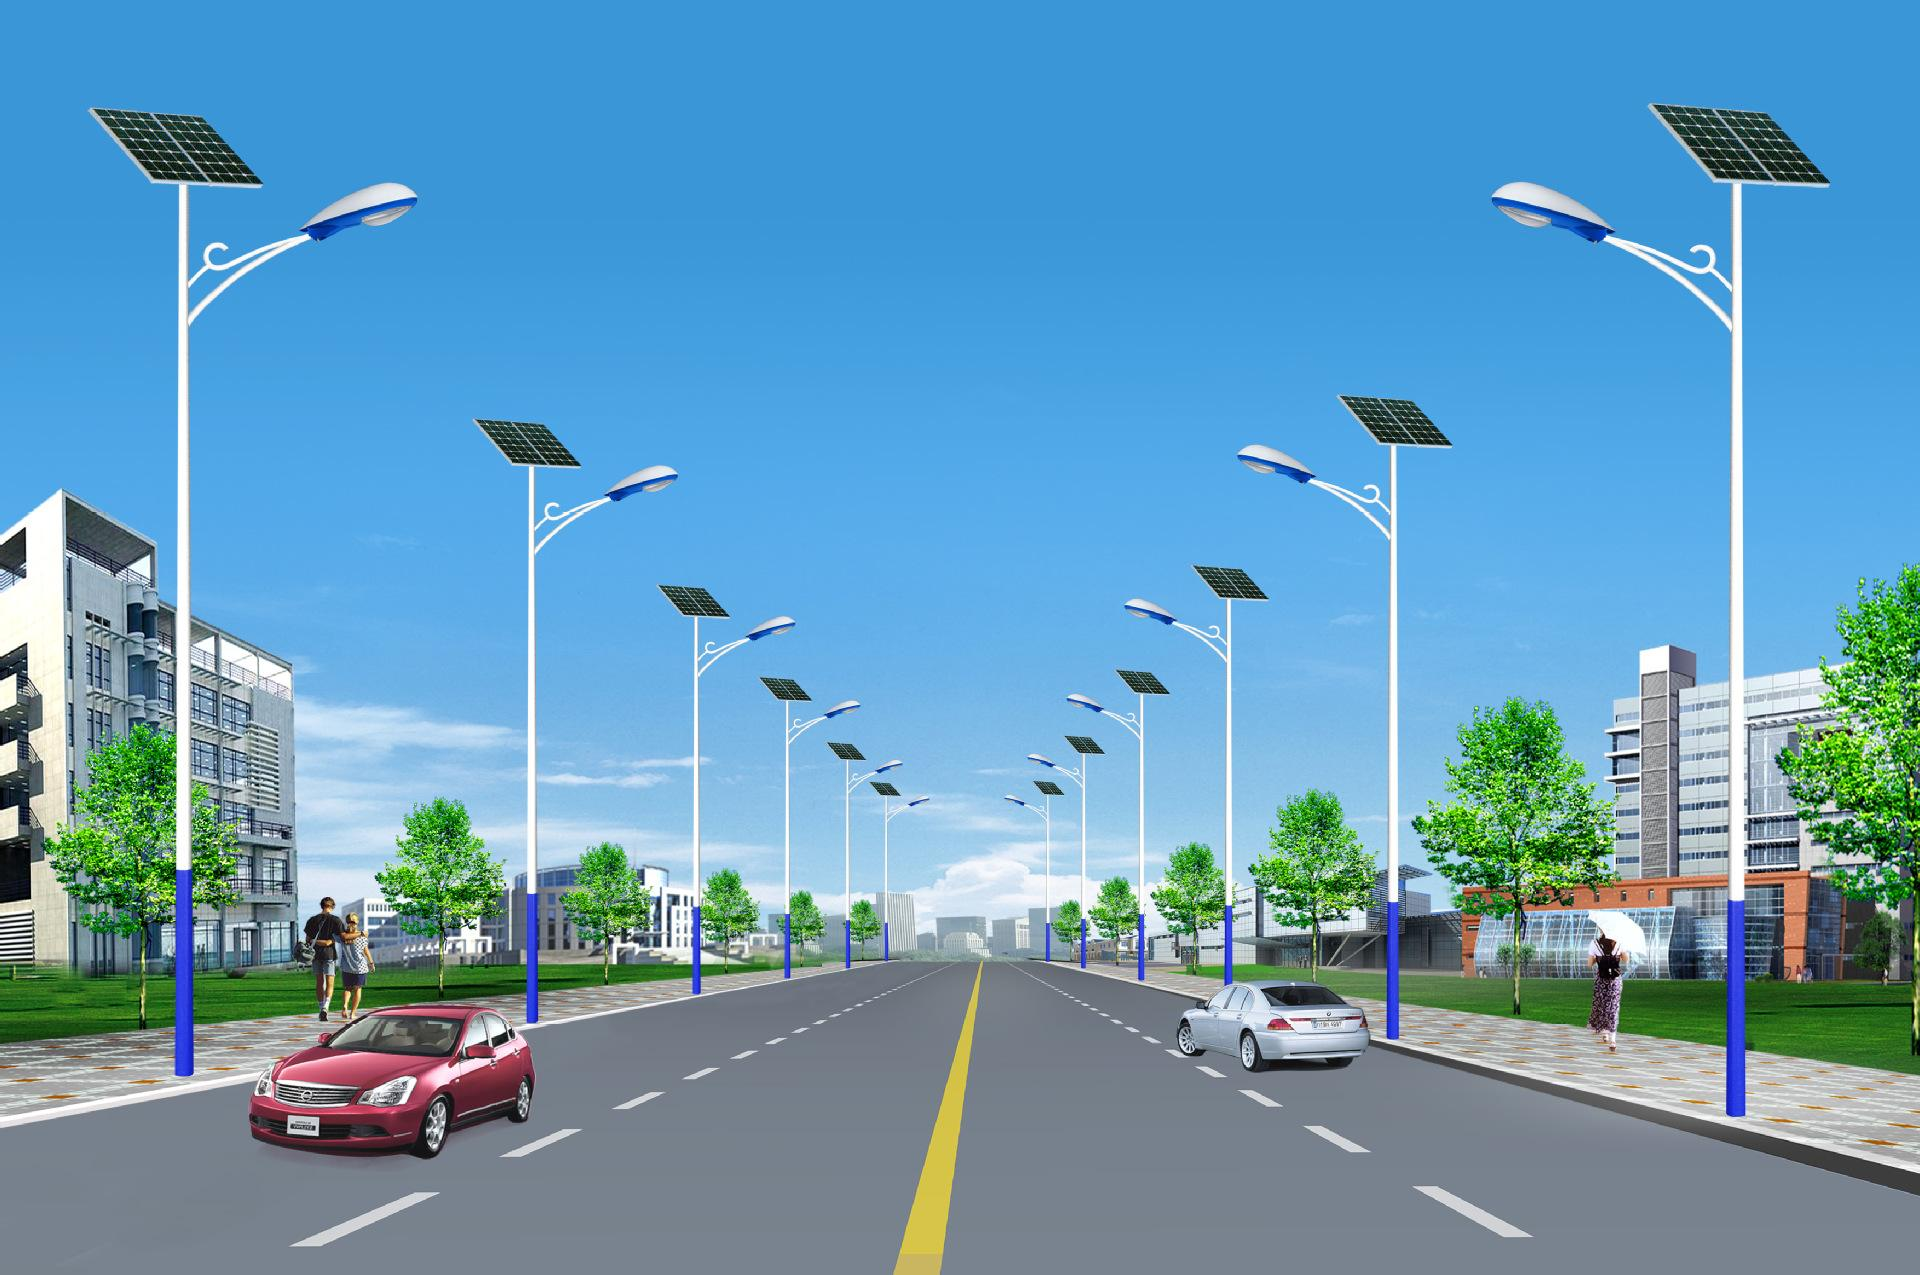 The price of LED street lamps cannot determine the market demand and consumer choice